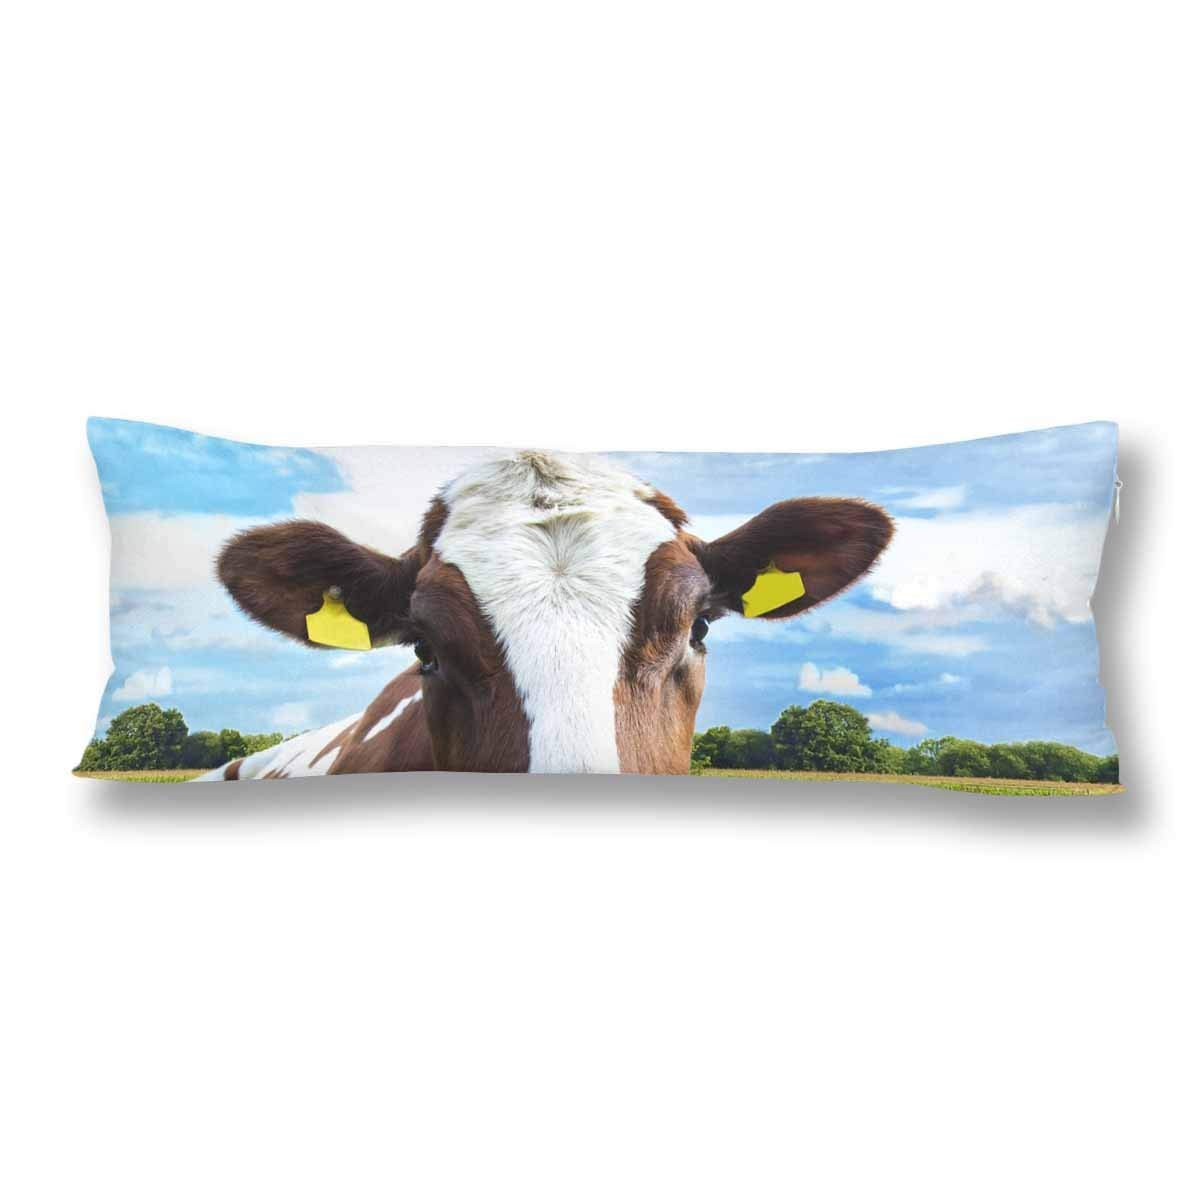 ABPHOTO White Red-Haired Young Cow on Pasture Body Pillow Covers Pillowcase 20x60 inch Blue Sky Body Pillow Case Protector